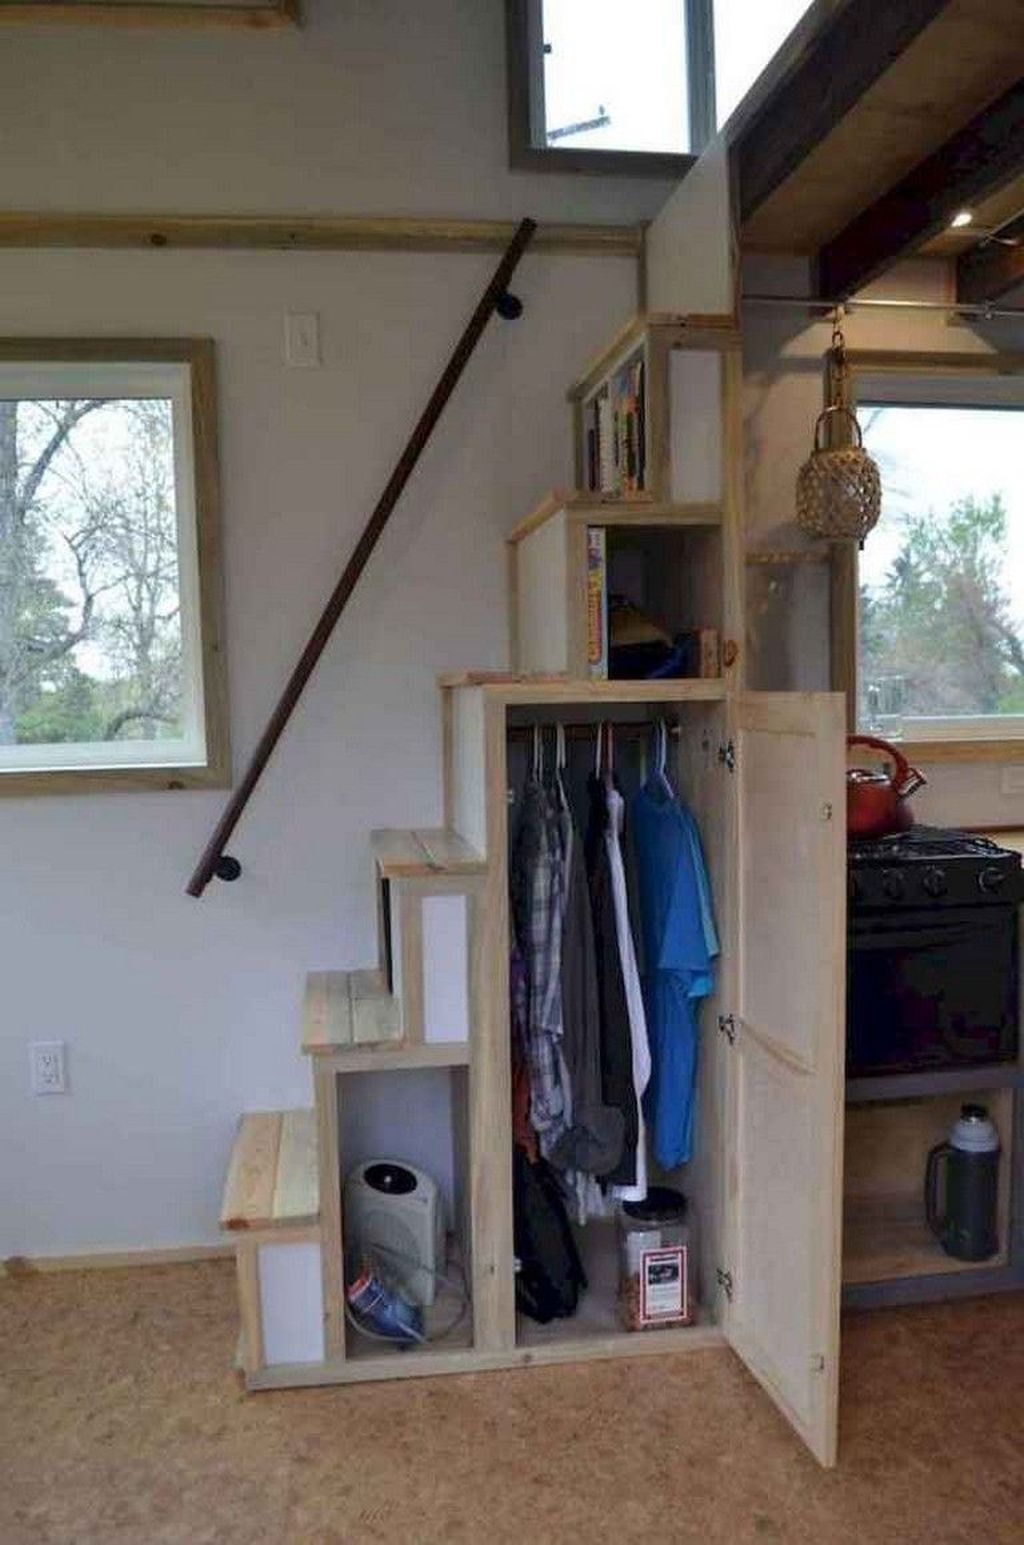 Newest Diy Tiny House Remodel Ideas To Copy Right Now 01